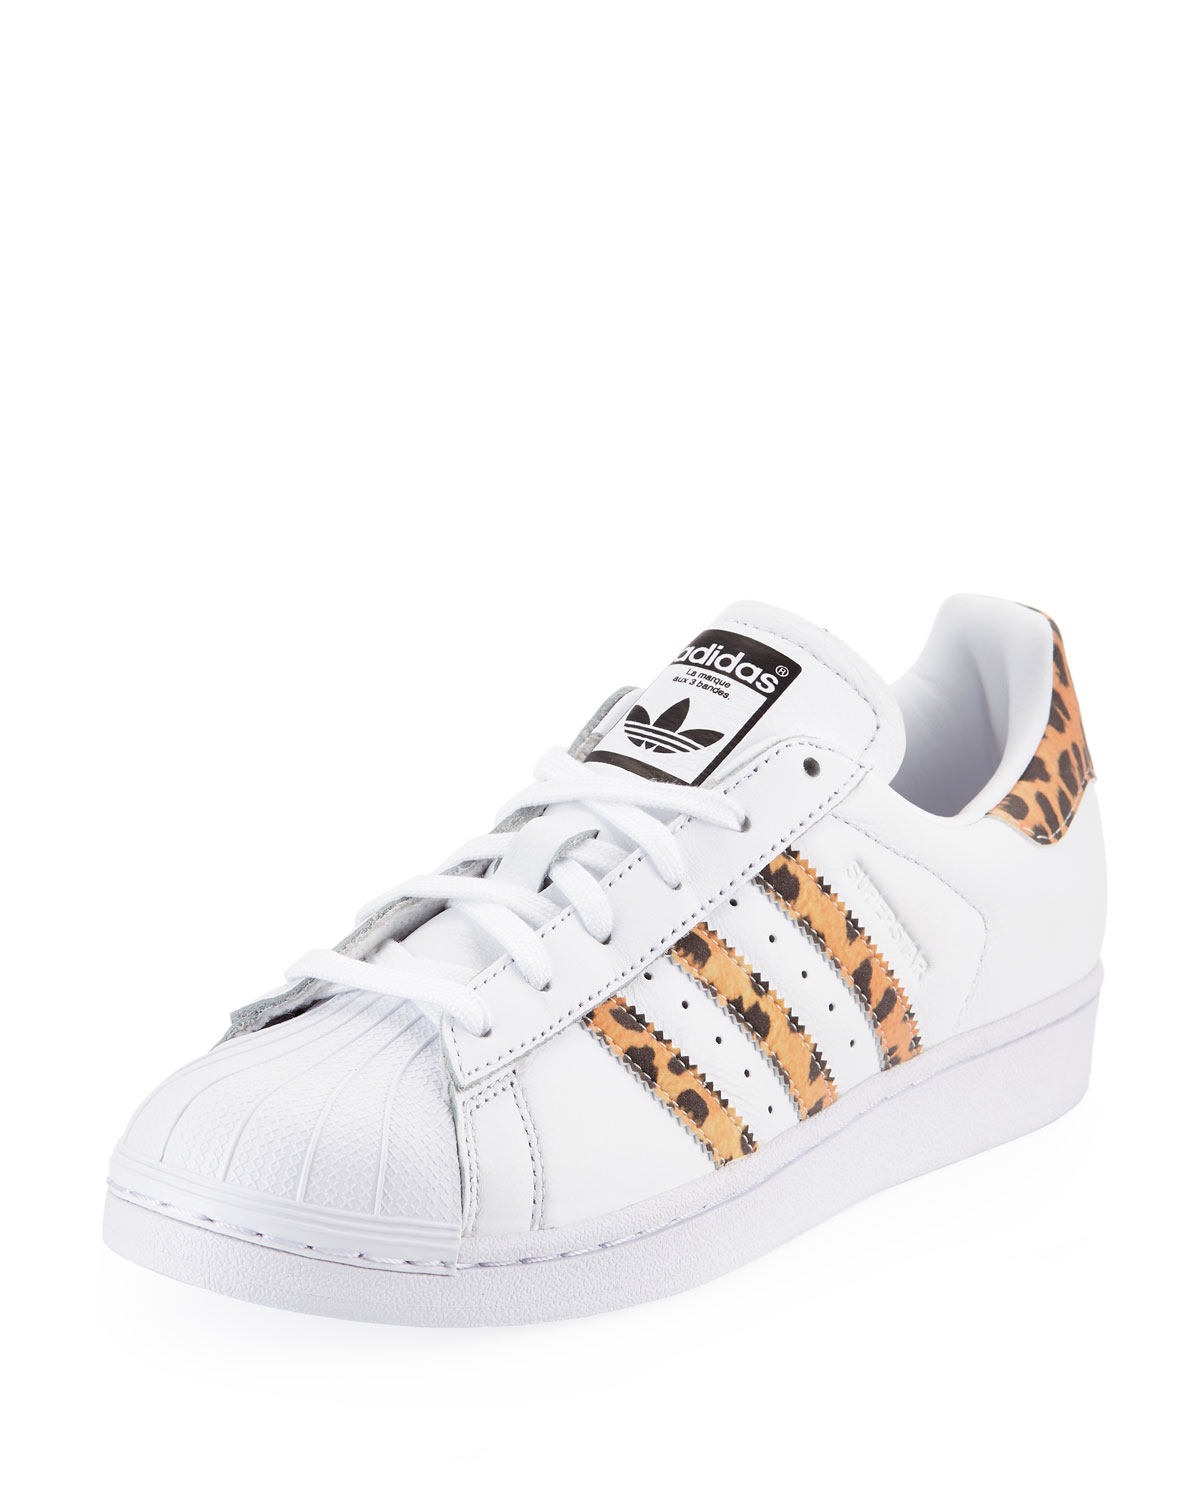 timeless design a4844 e34c9 Adidas Superstar Leopard Sneakers